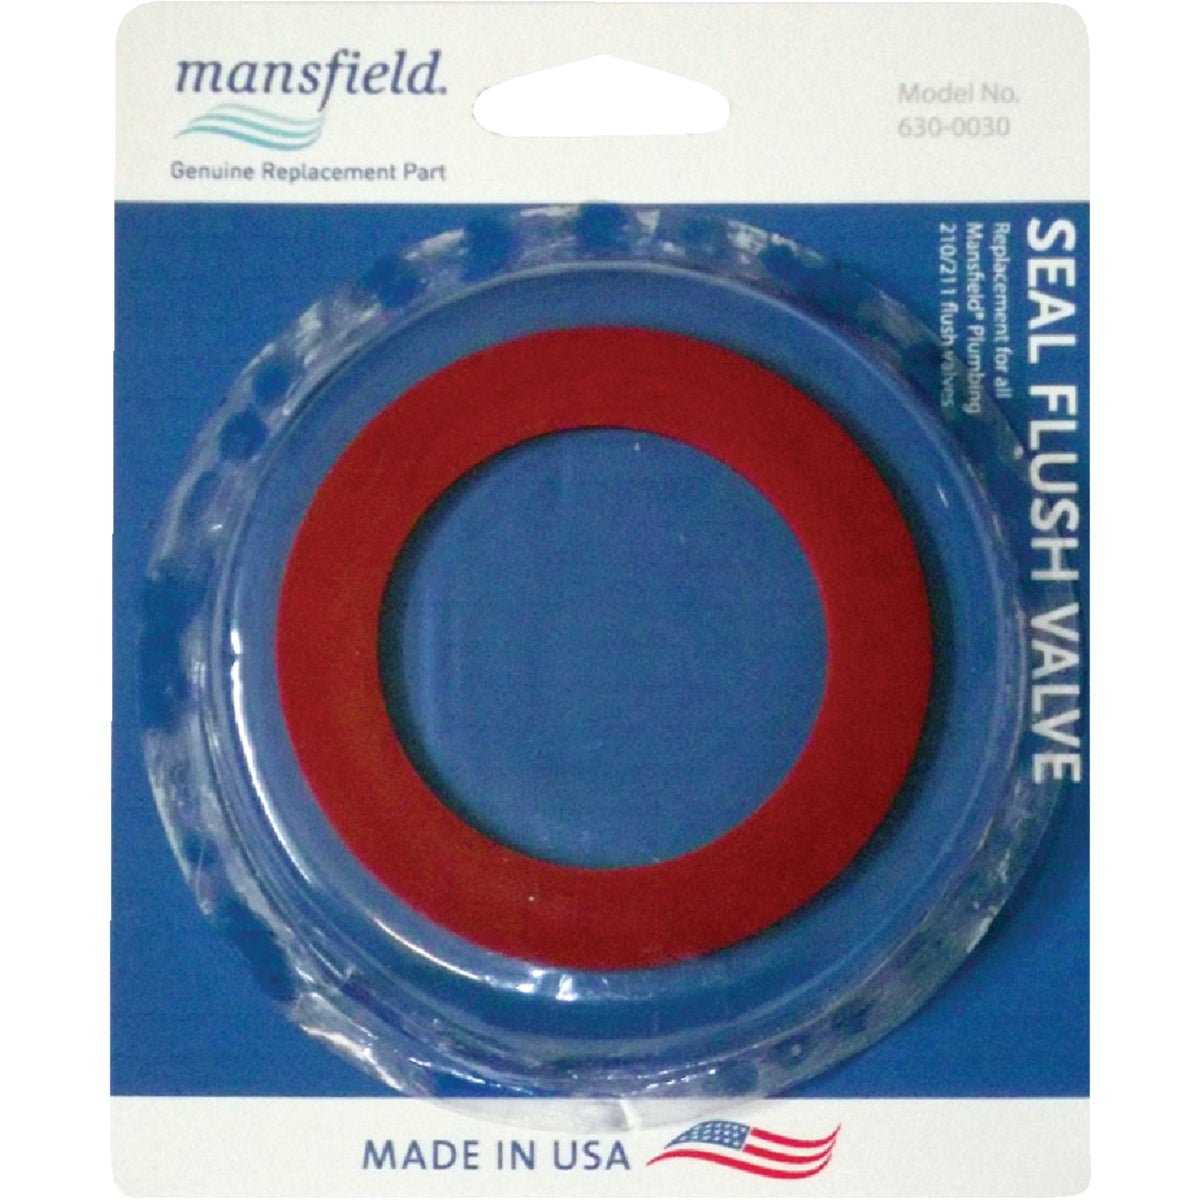 FLUSH VALVE SEAL KIT - 106300030 by Mansfield Plumbing